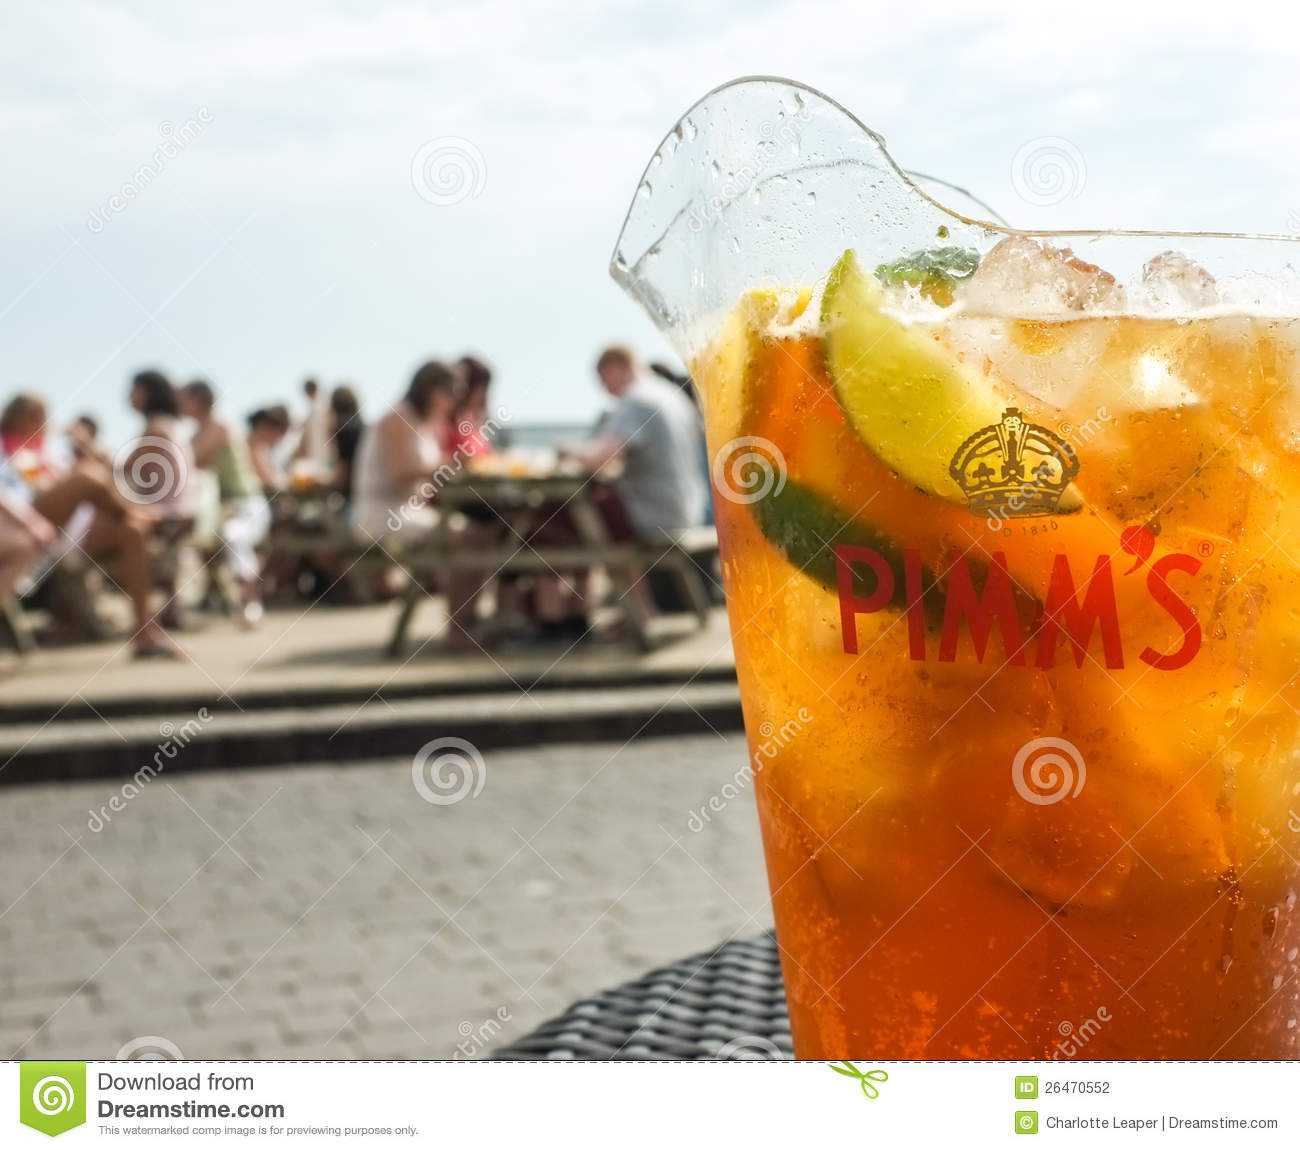 Jug of Pimm s Drink Outdoors